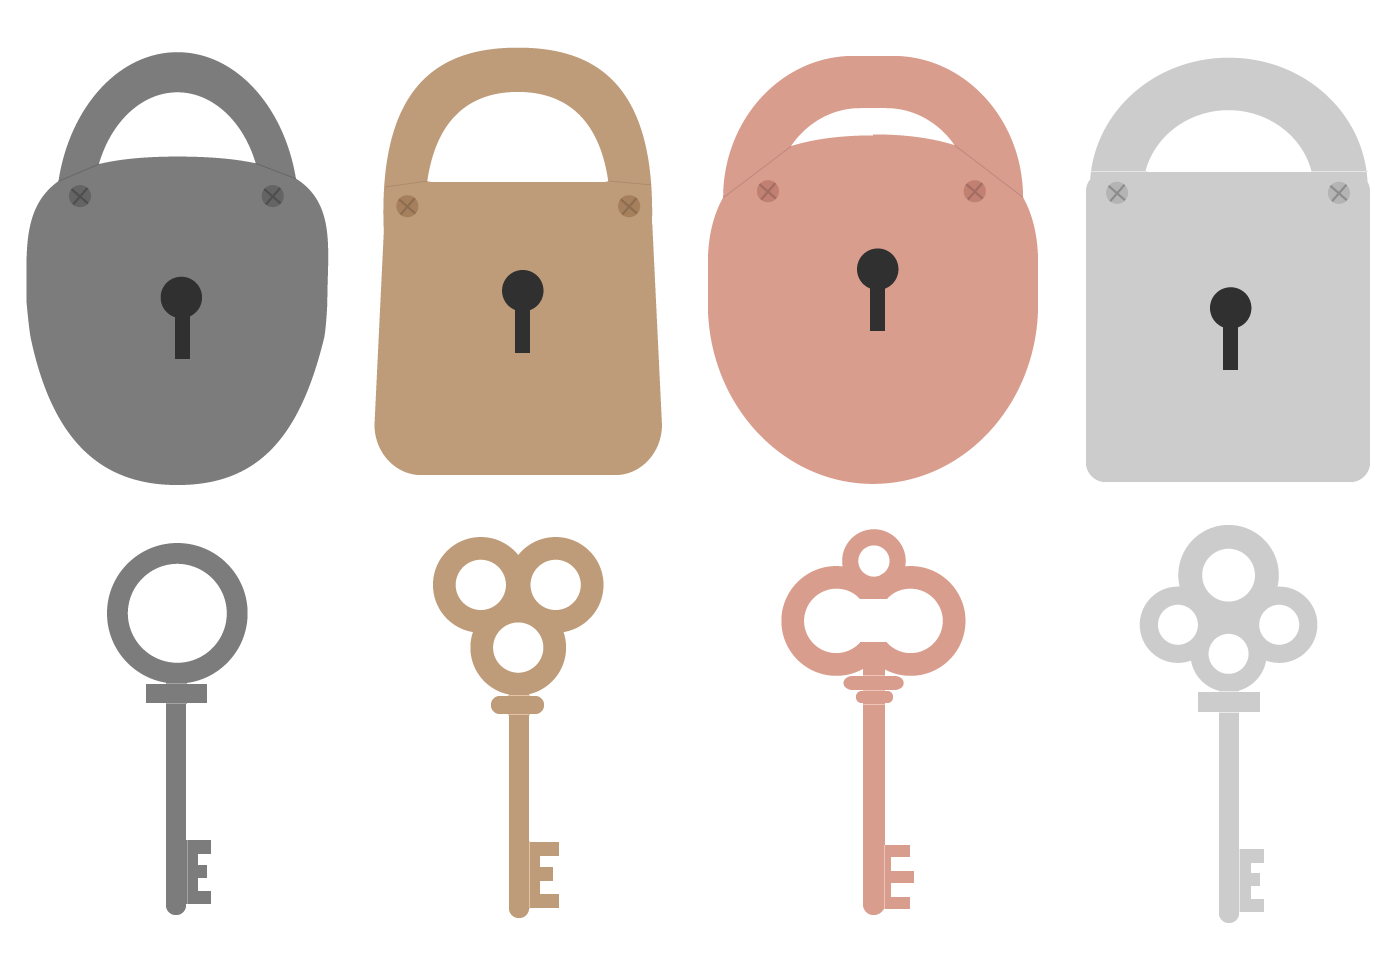 Free Key and Lock Vector - Download Free Vector Art, Stock ...